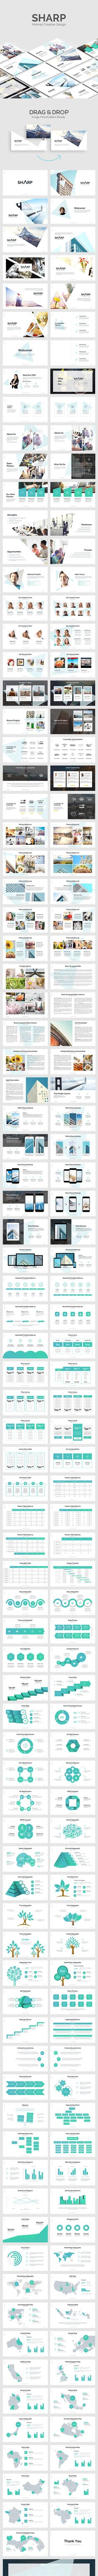 SHARP - Creative Design - PowerPoint Templates Presentation Templates